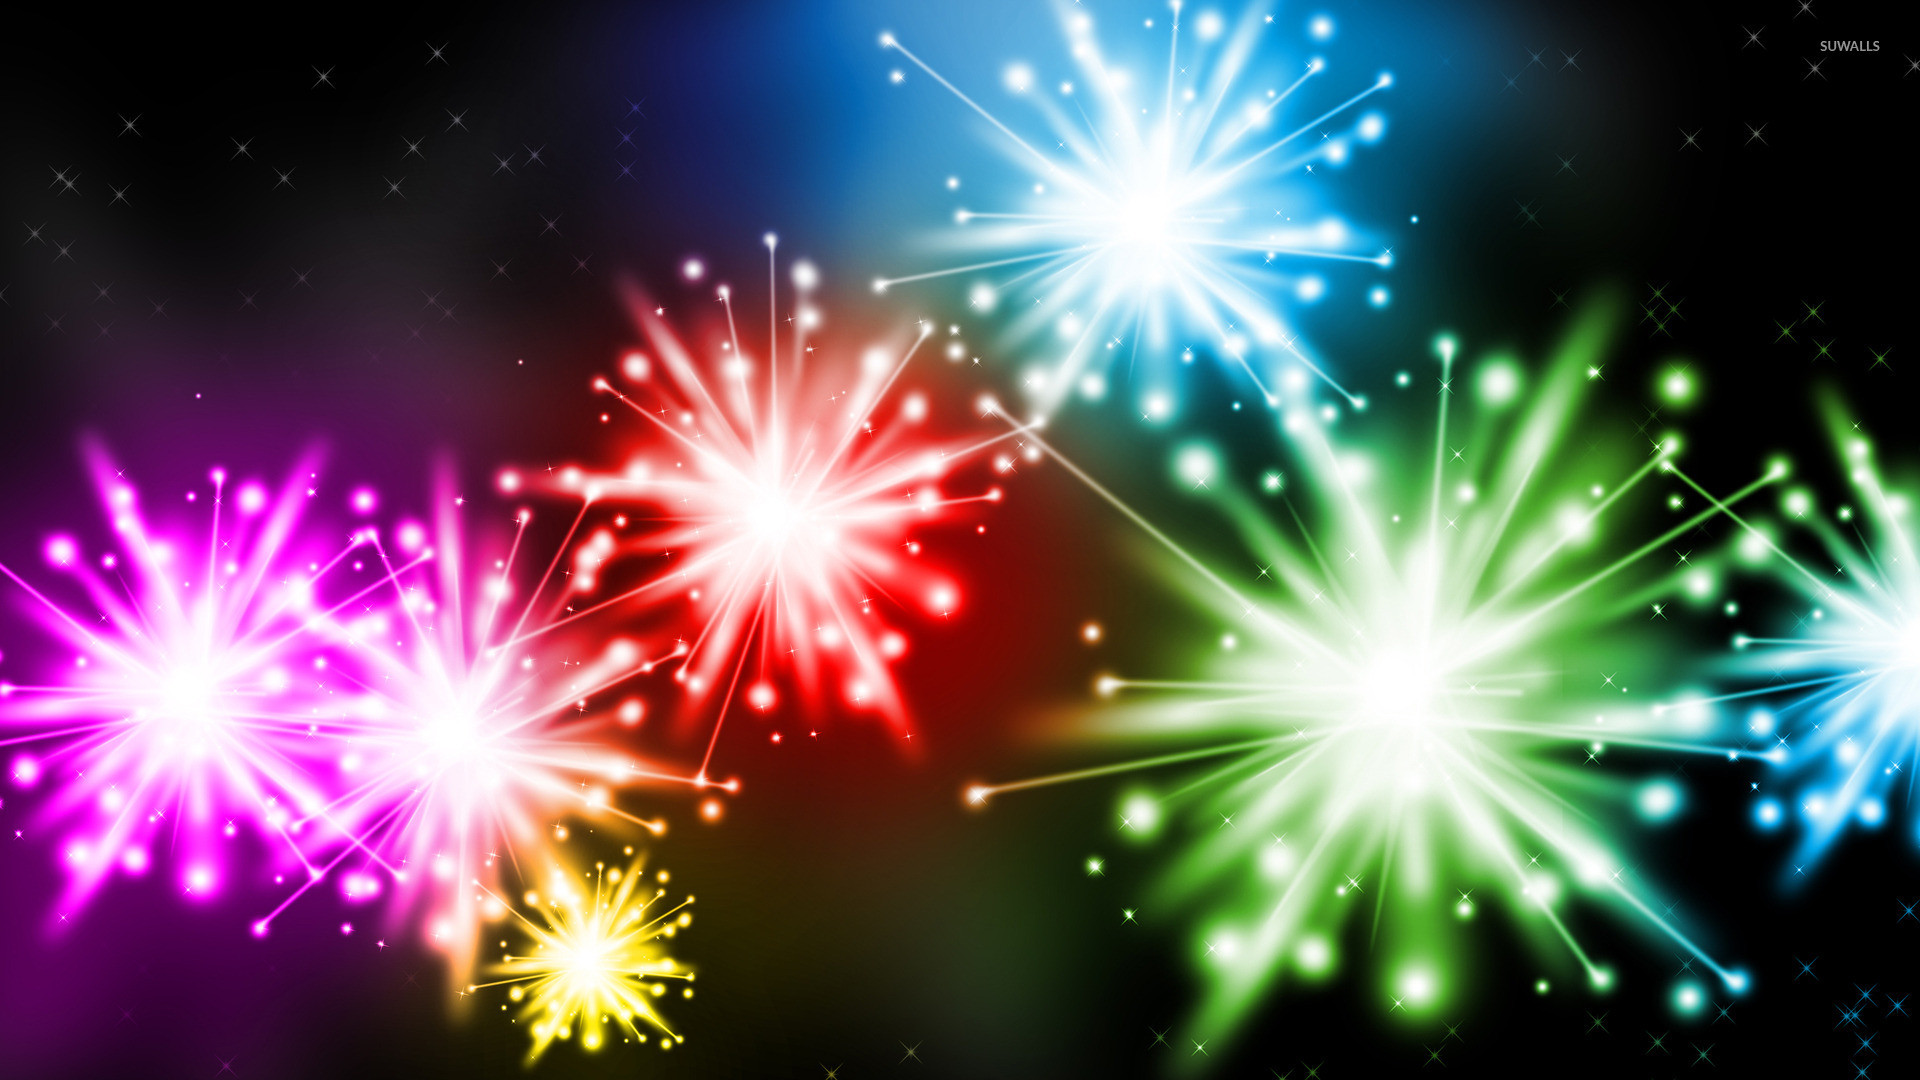 1920x1080 HD Fireworks Wallpapers And Photos Abstract